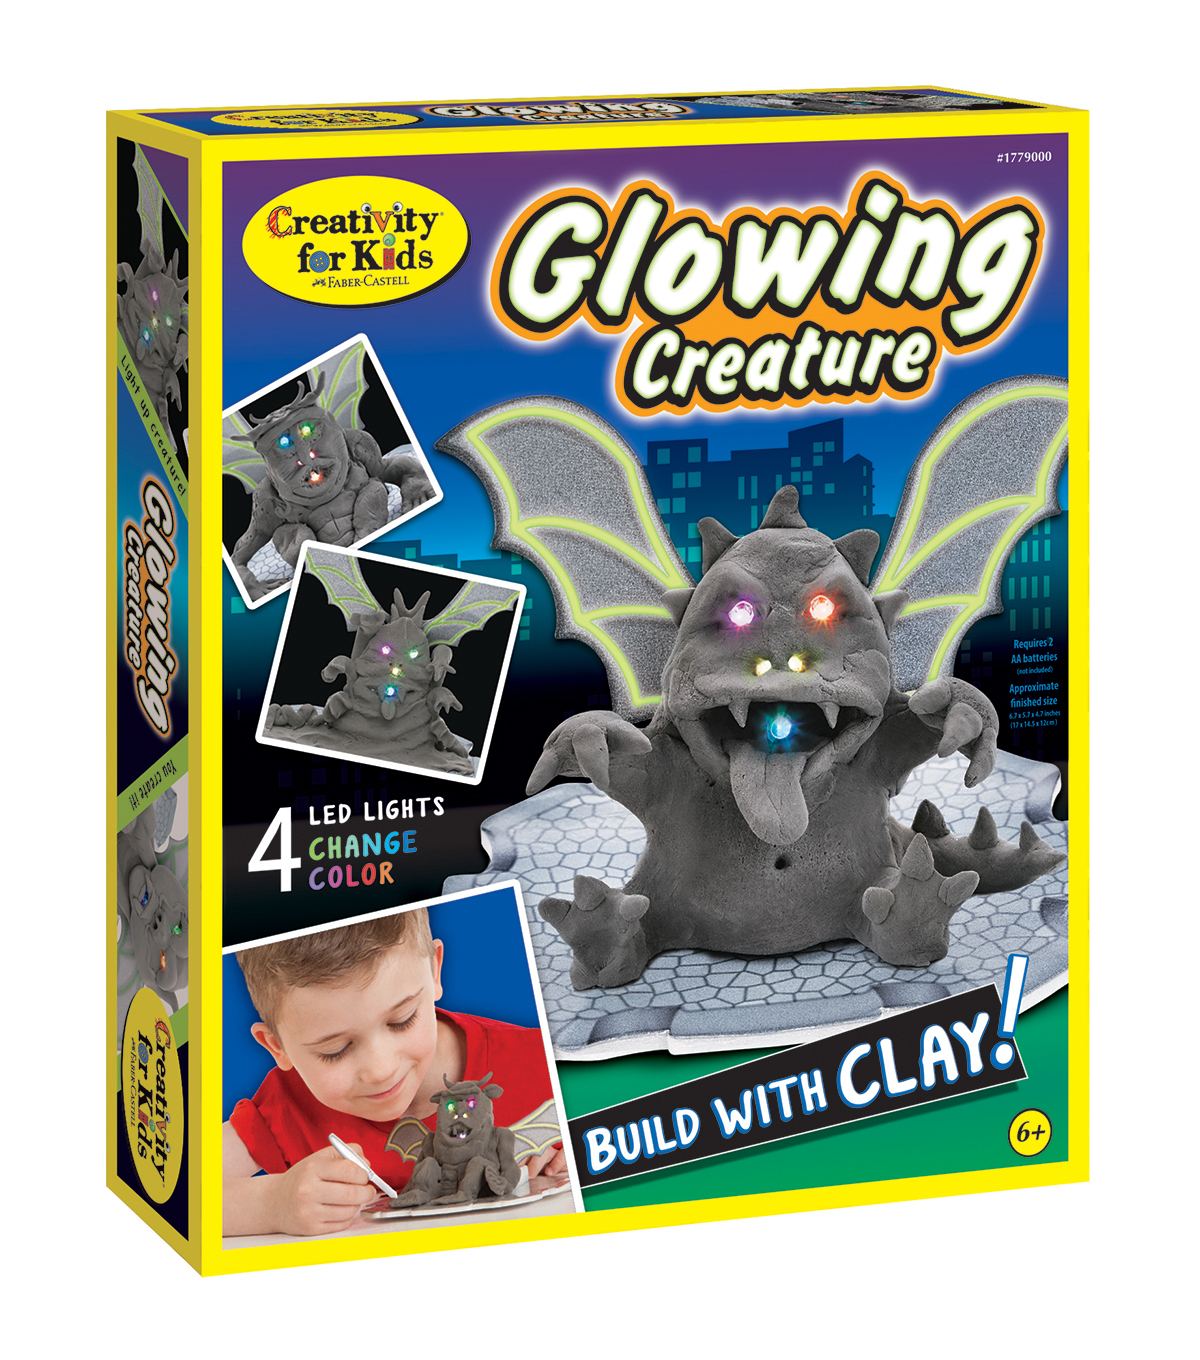 Creativity For Kids Glowing Creature Kit